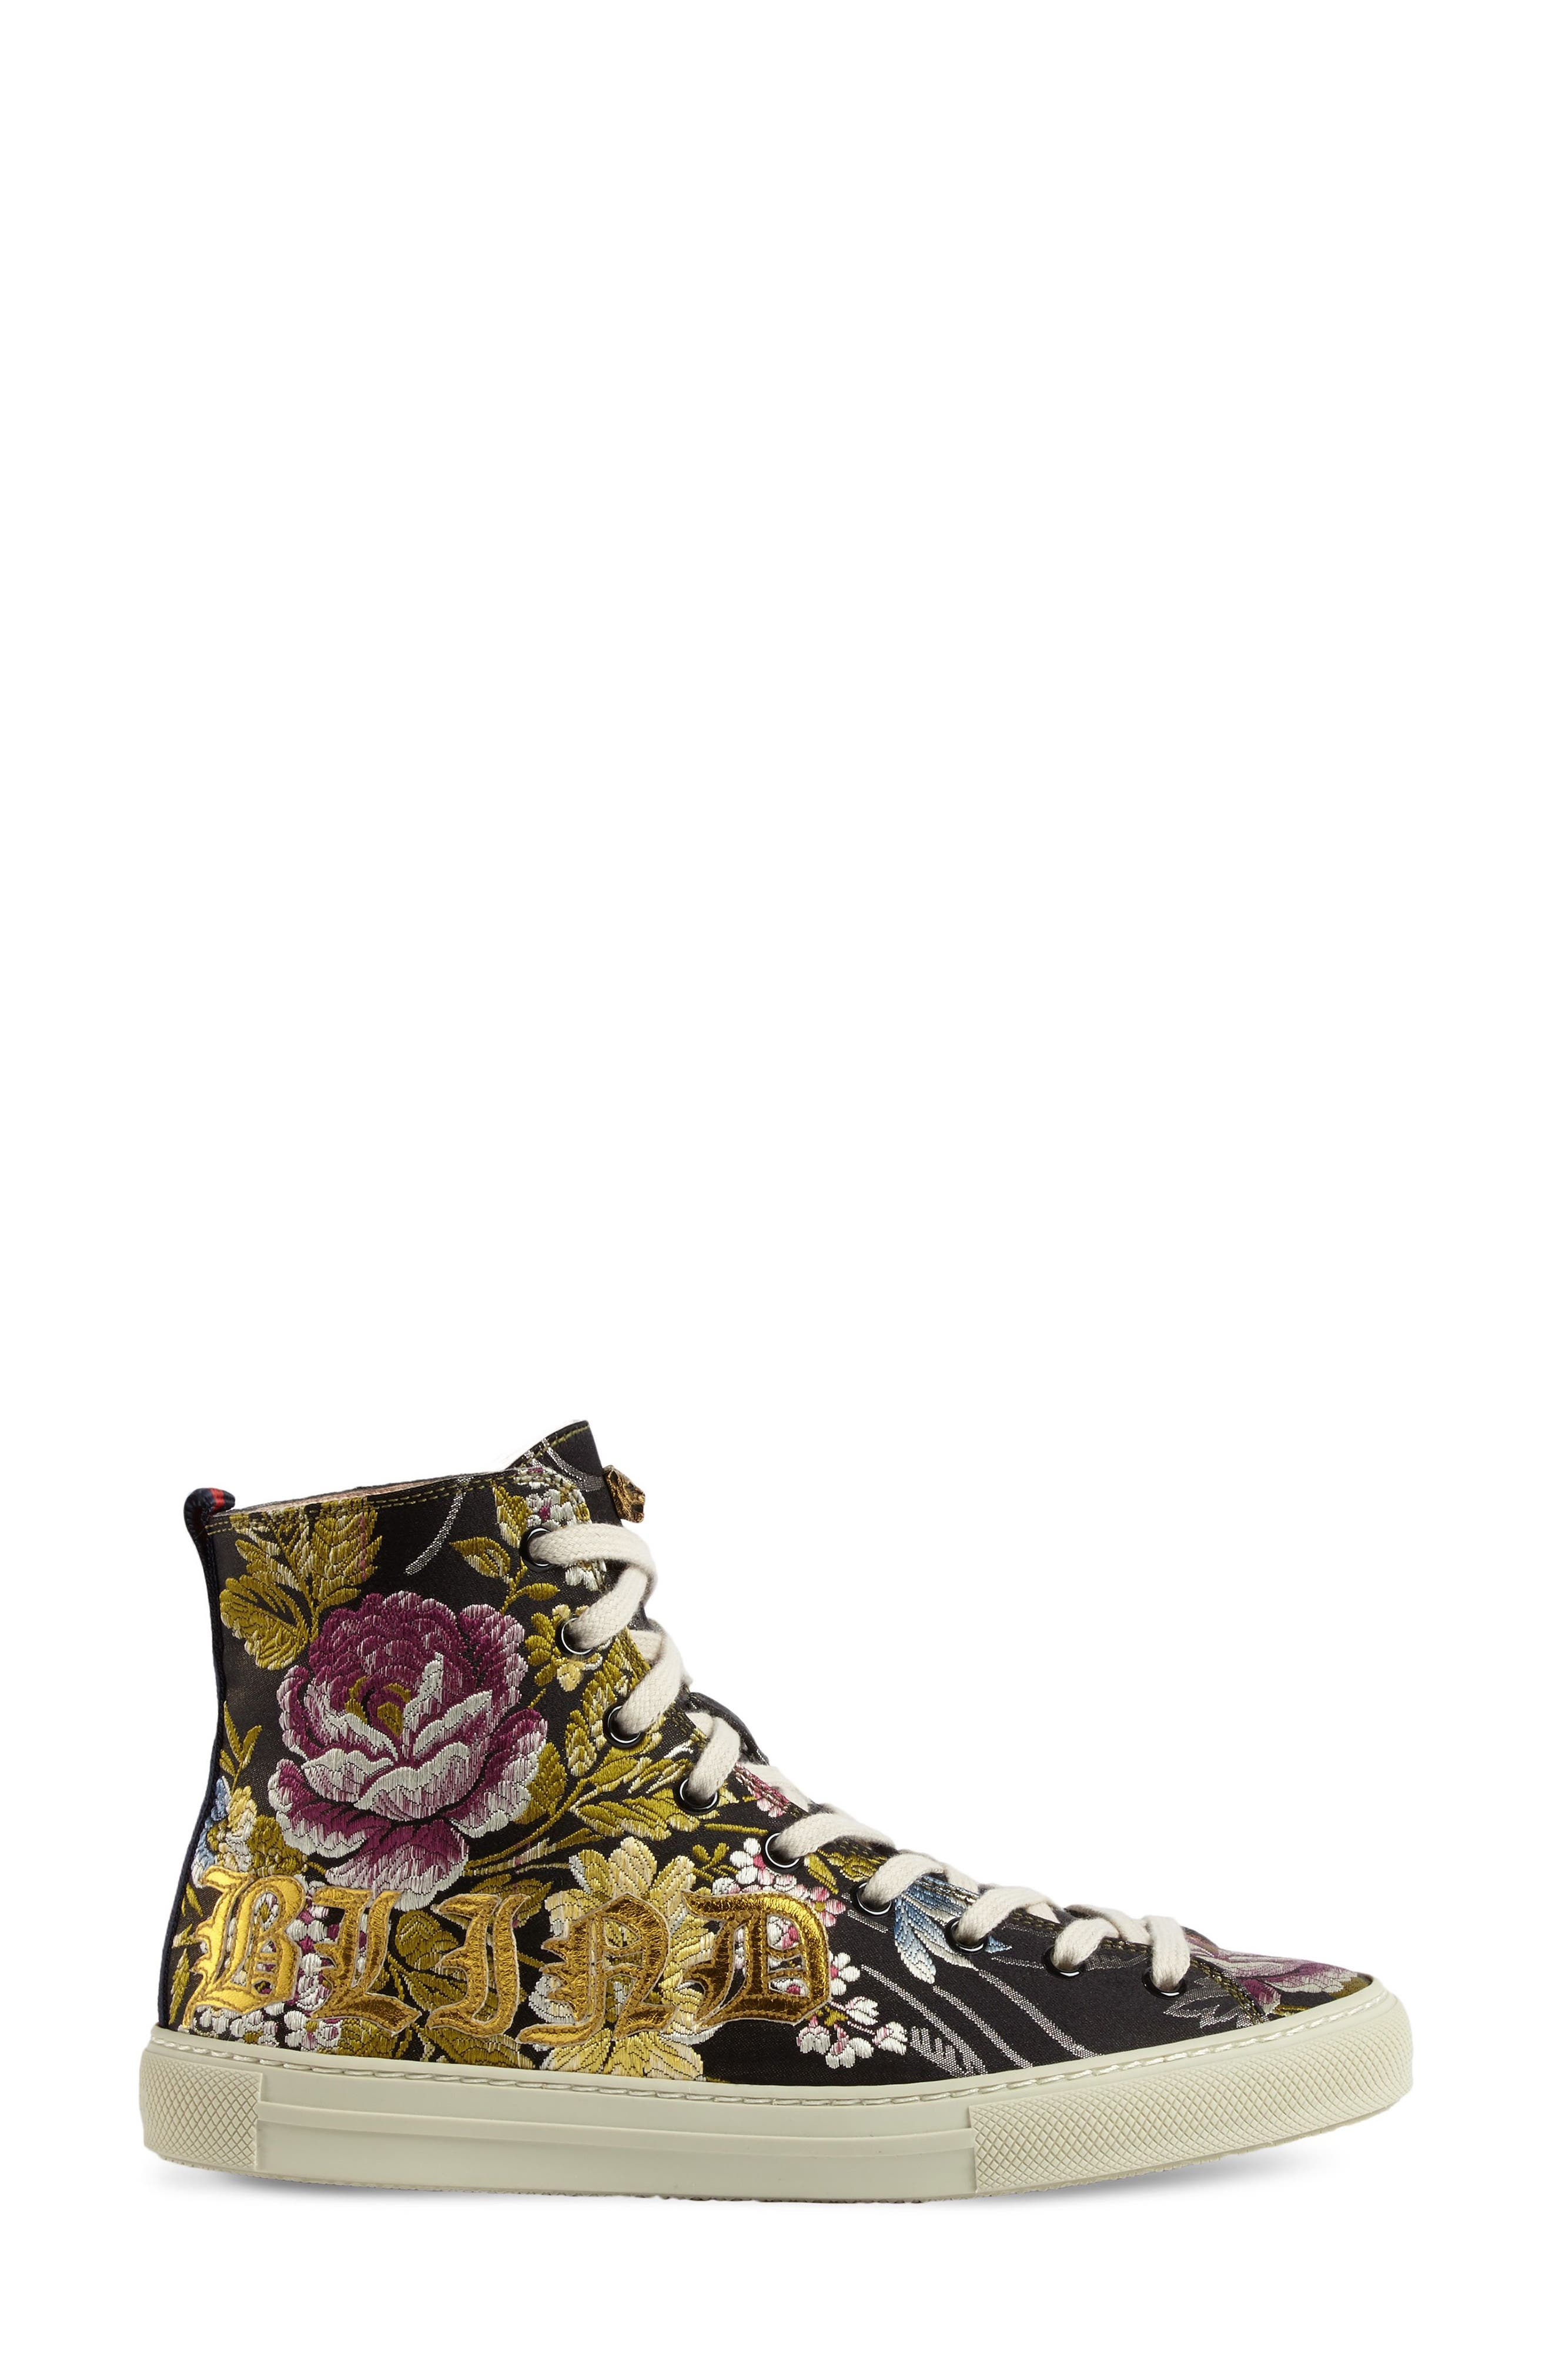 GUCCI Floral High Top Sneaker